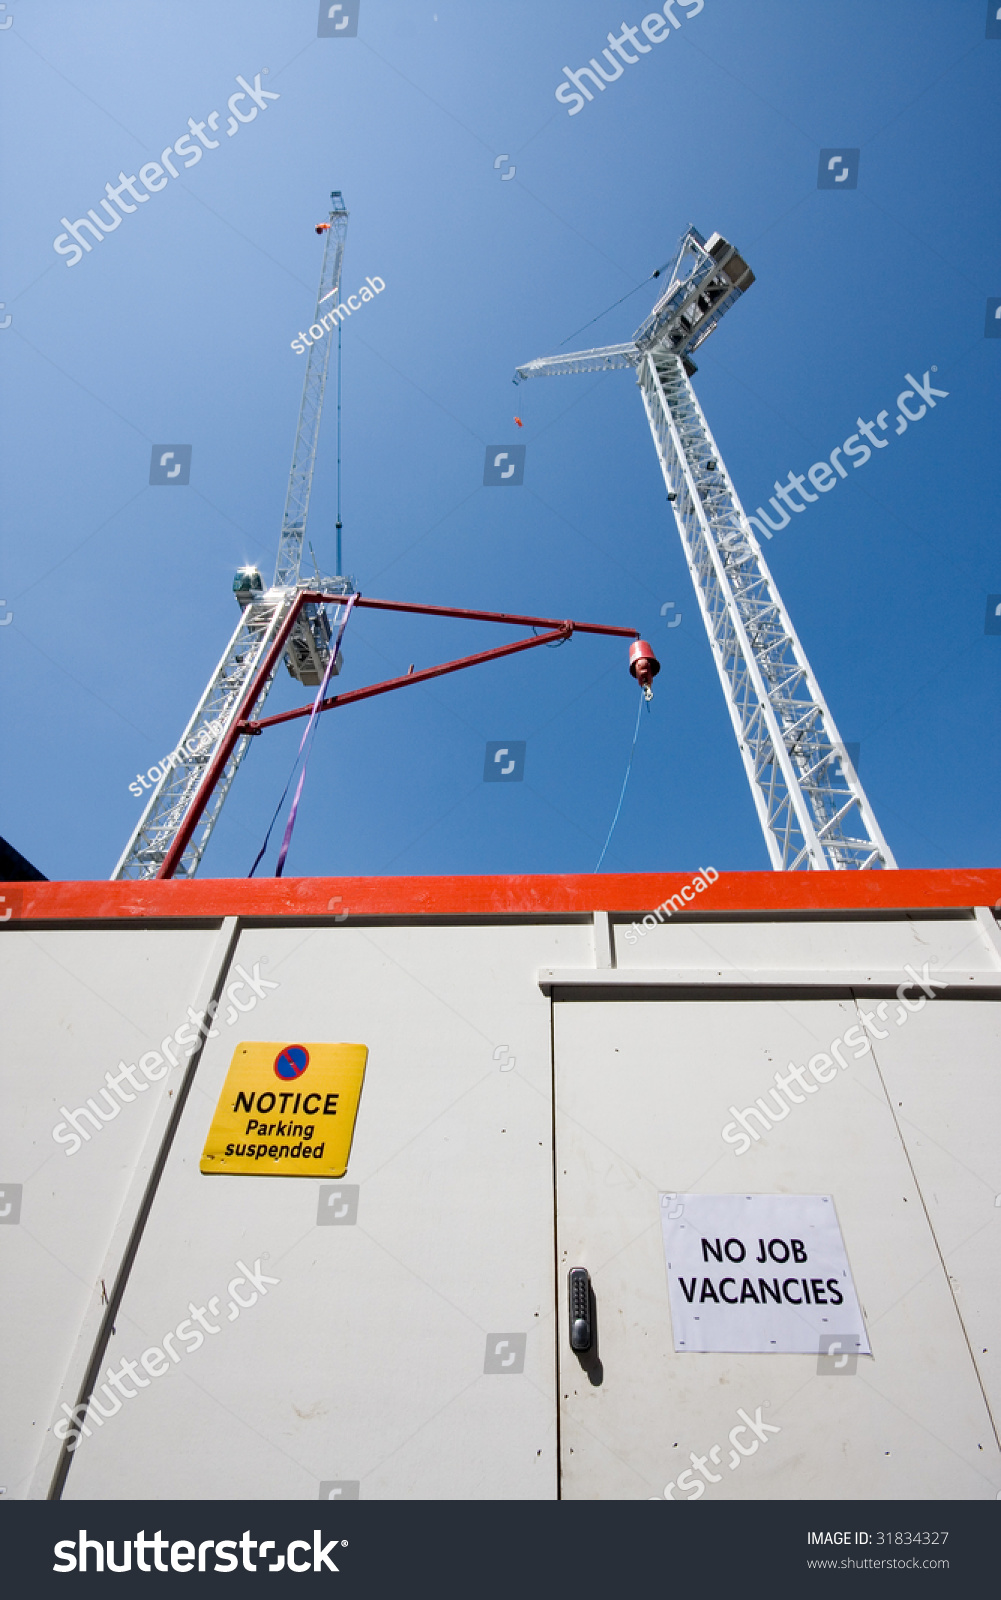 No Job Vacancies Sign By Building Stock Photo (Edit Now